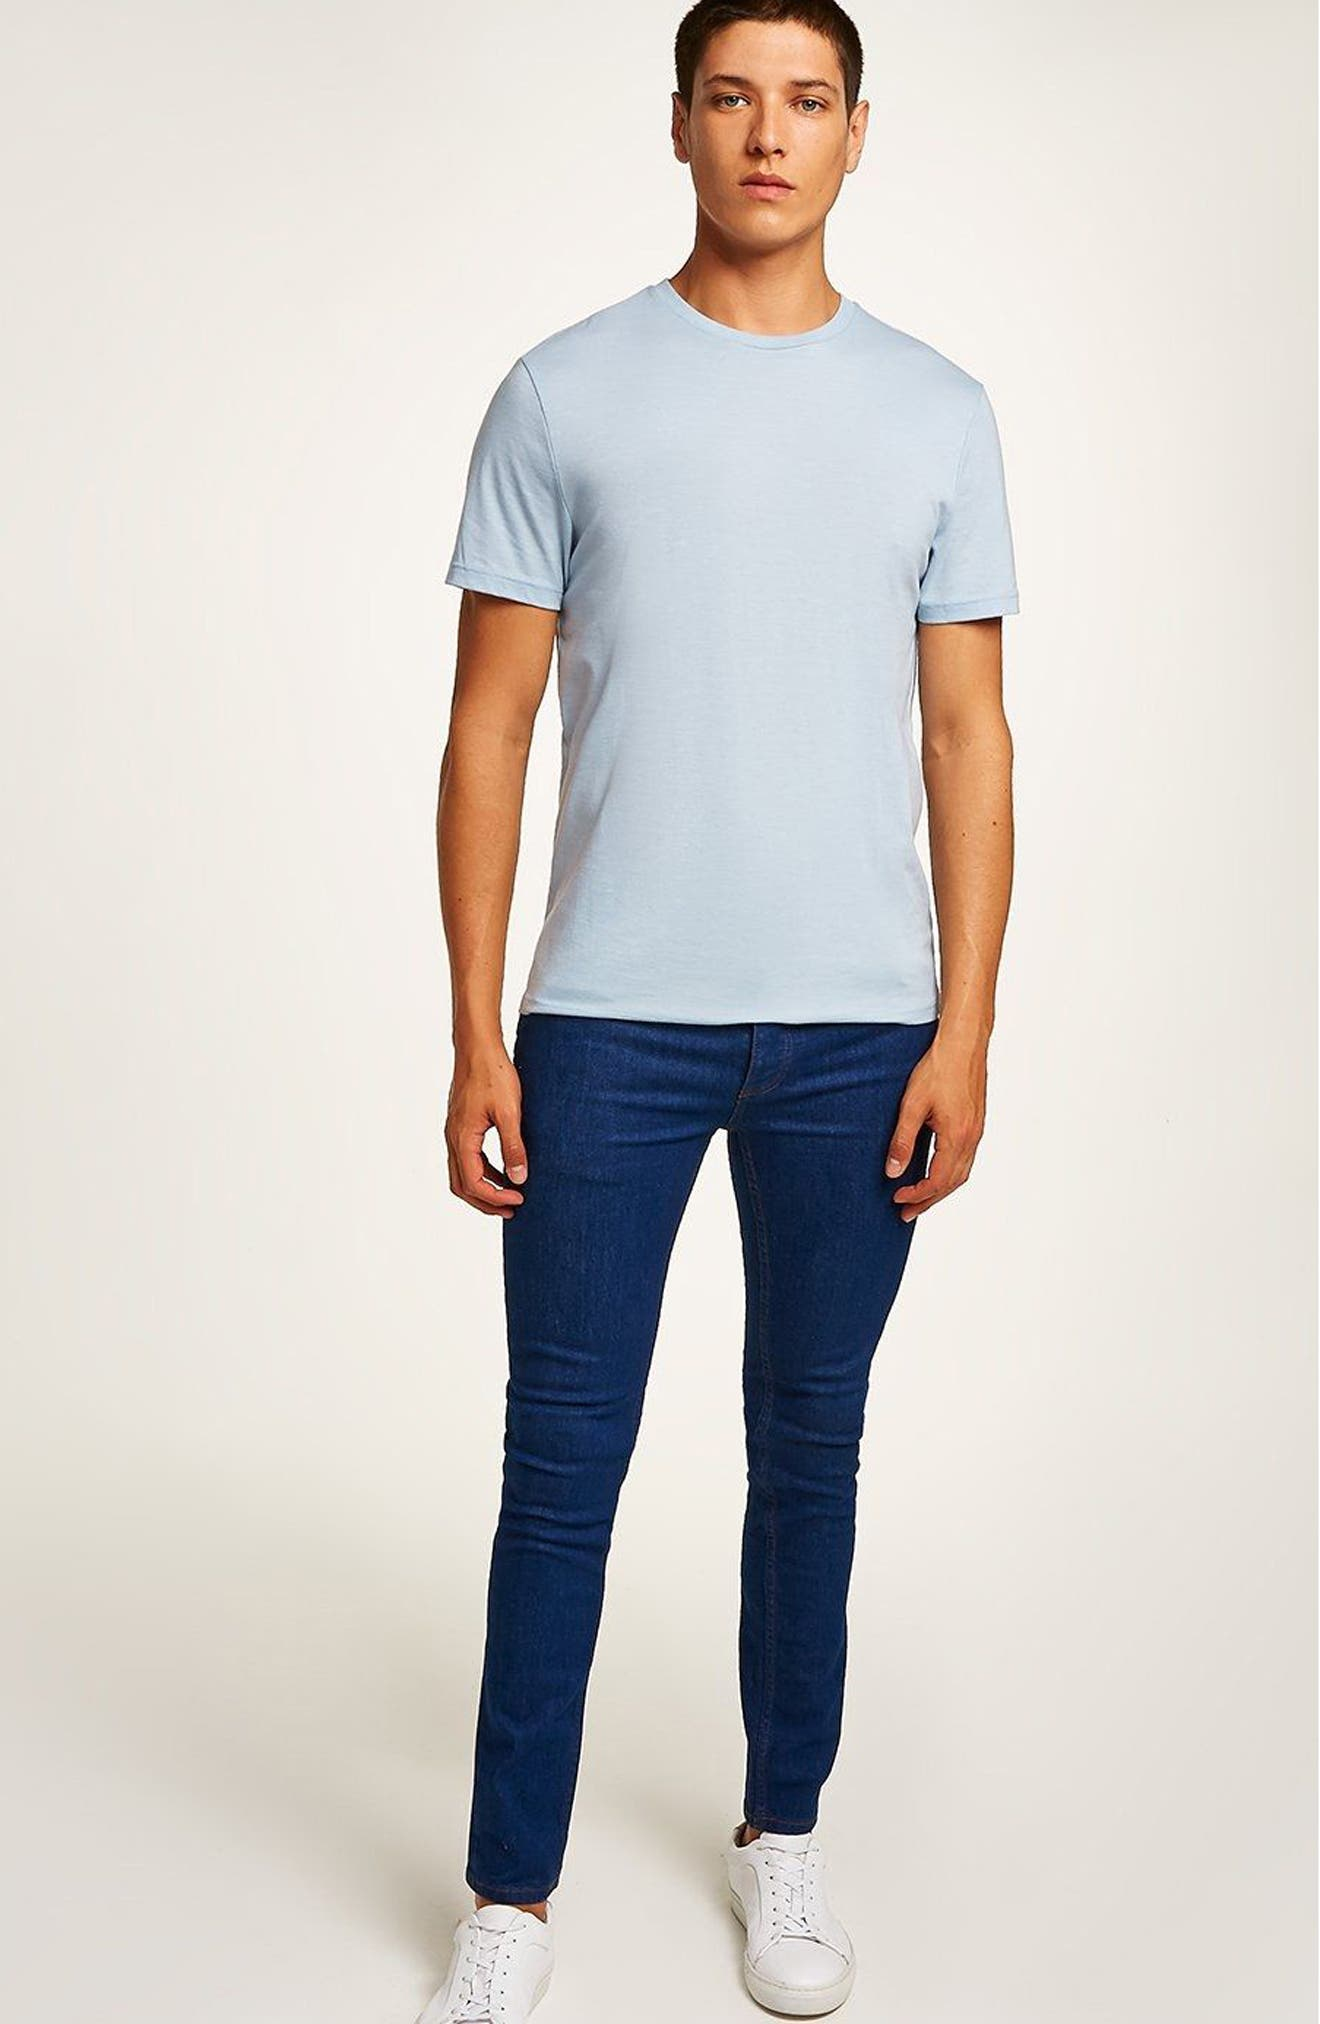 Stretch Skinny Fit Jeans,                             Alternate thumbnail 5, color,                             400